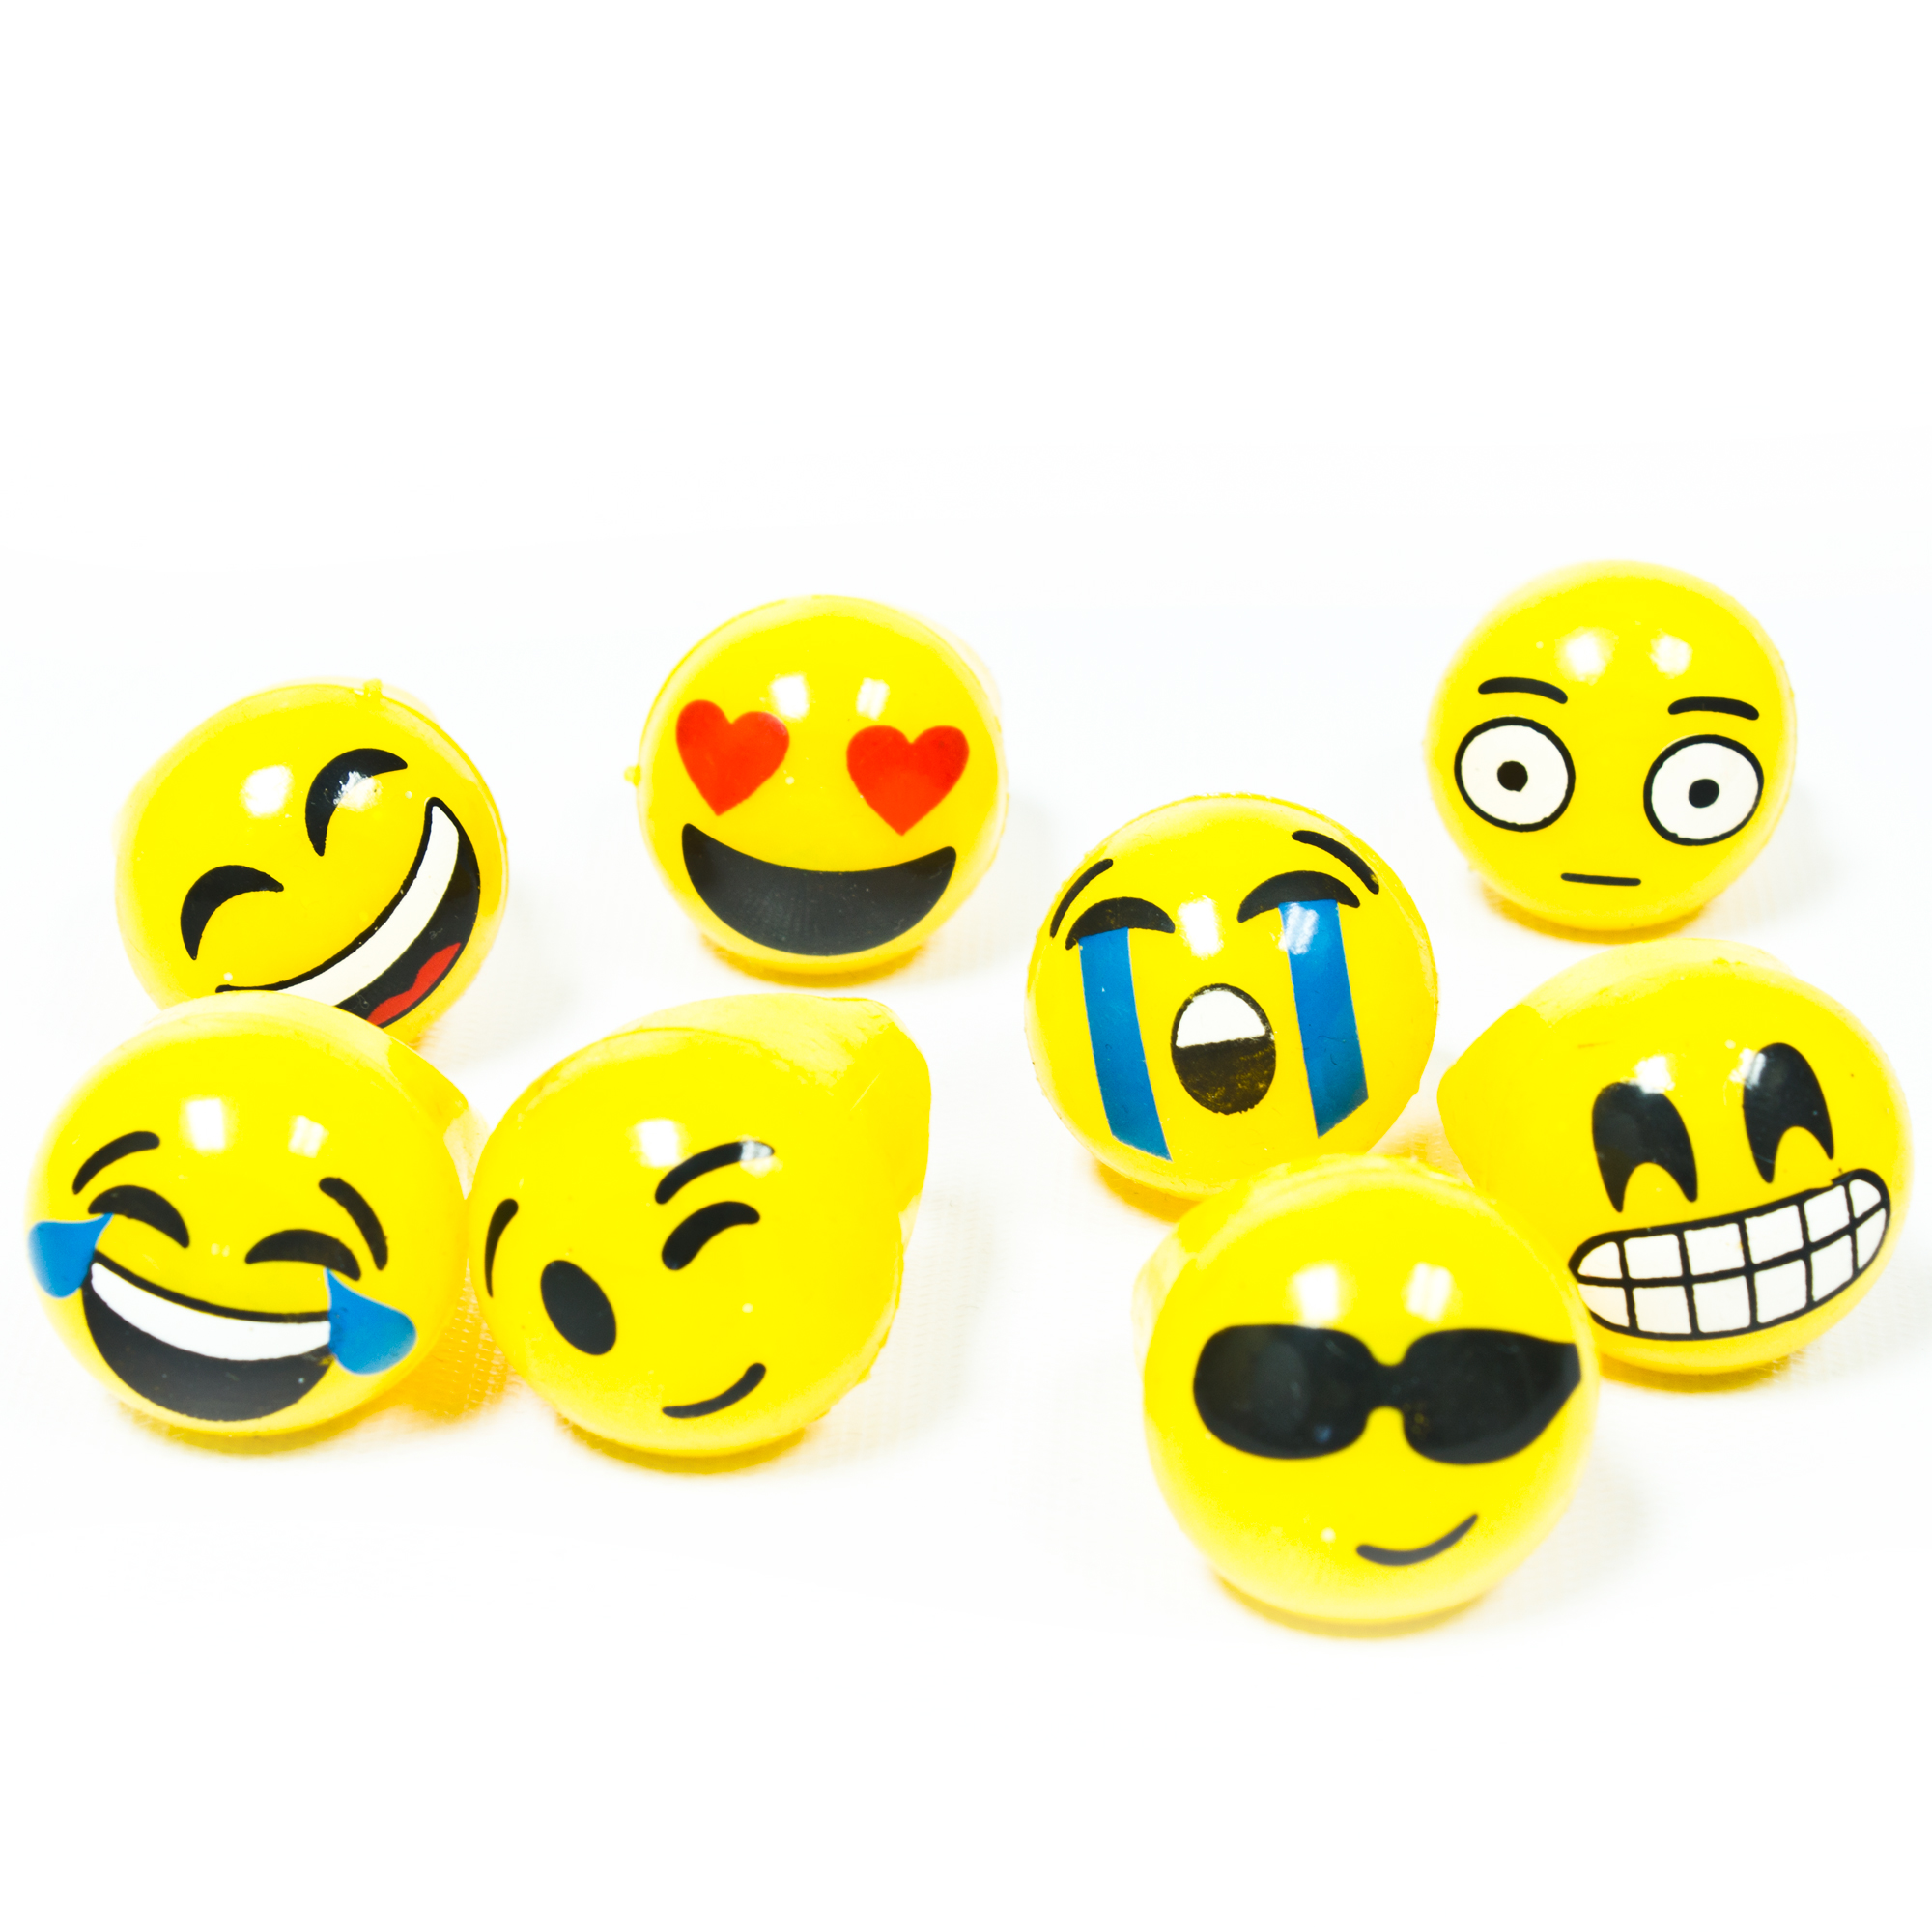 LED Jelly Emoji Rings - Assorted